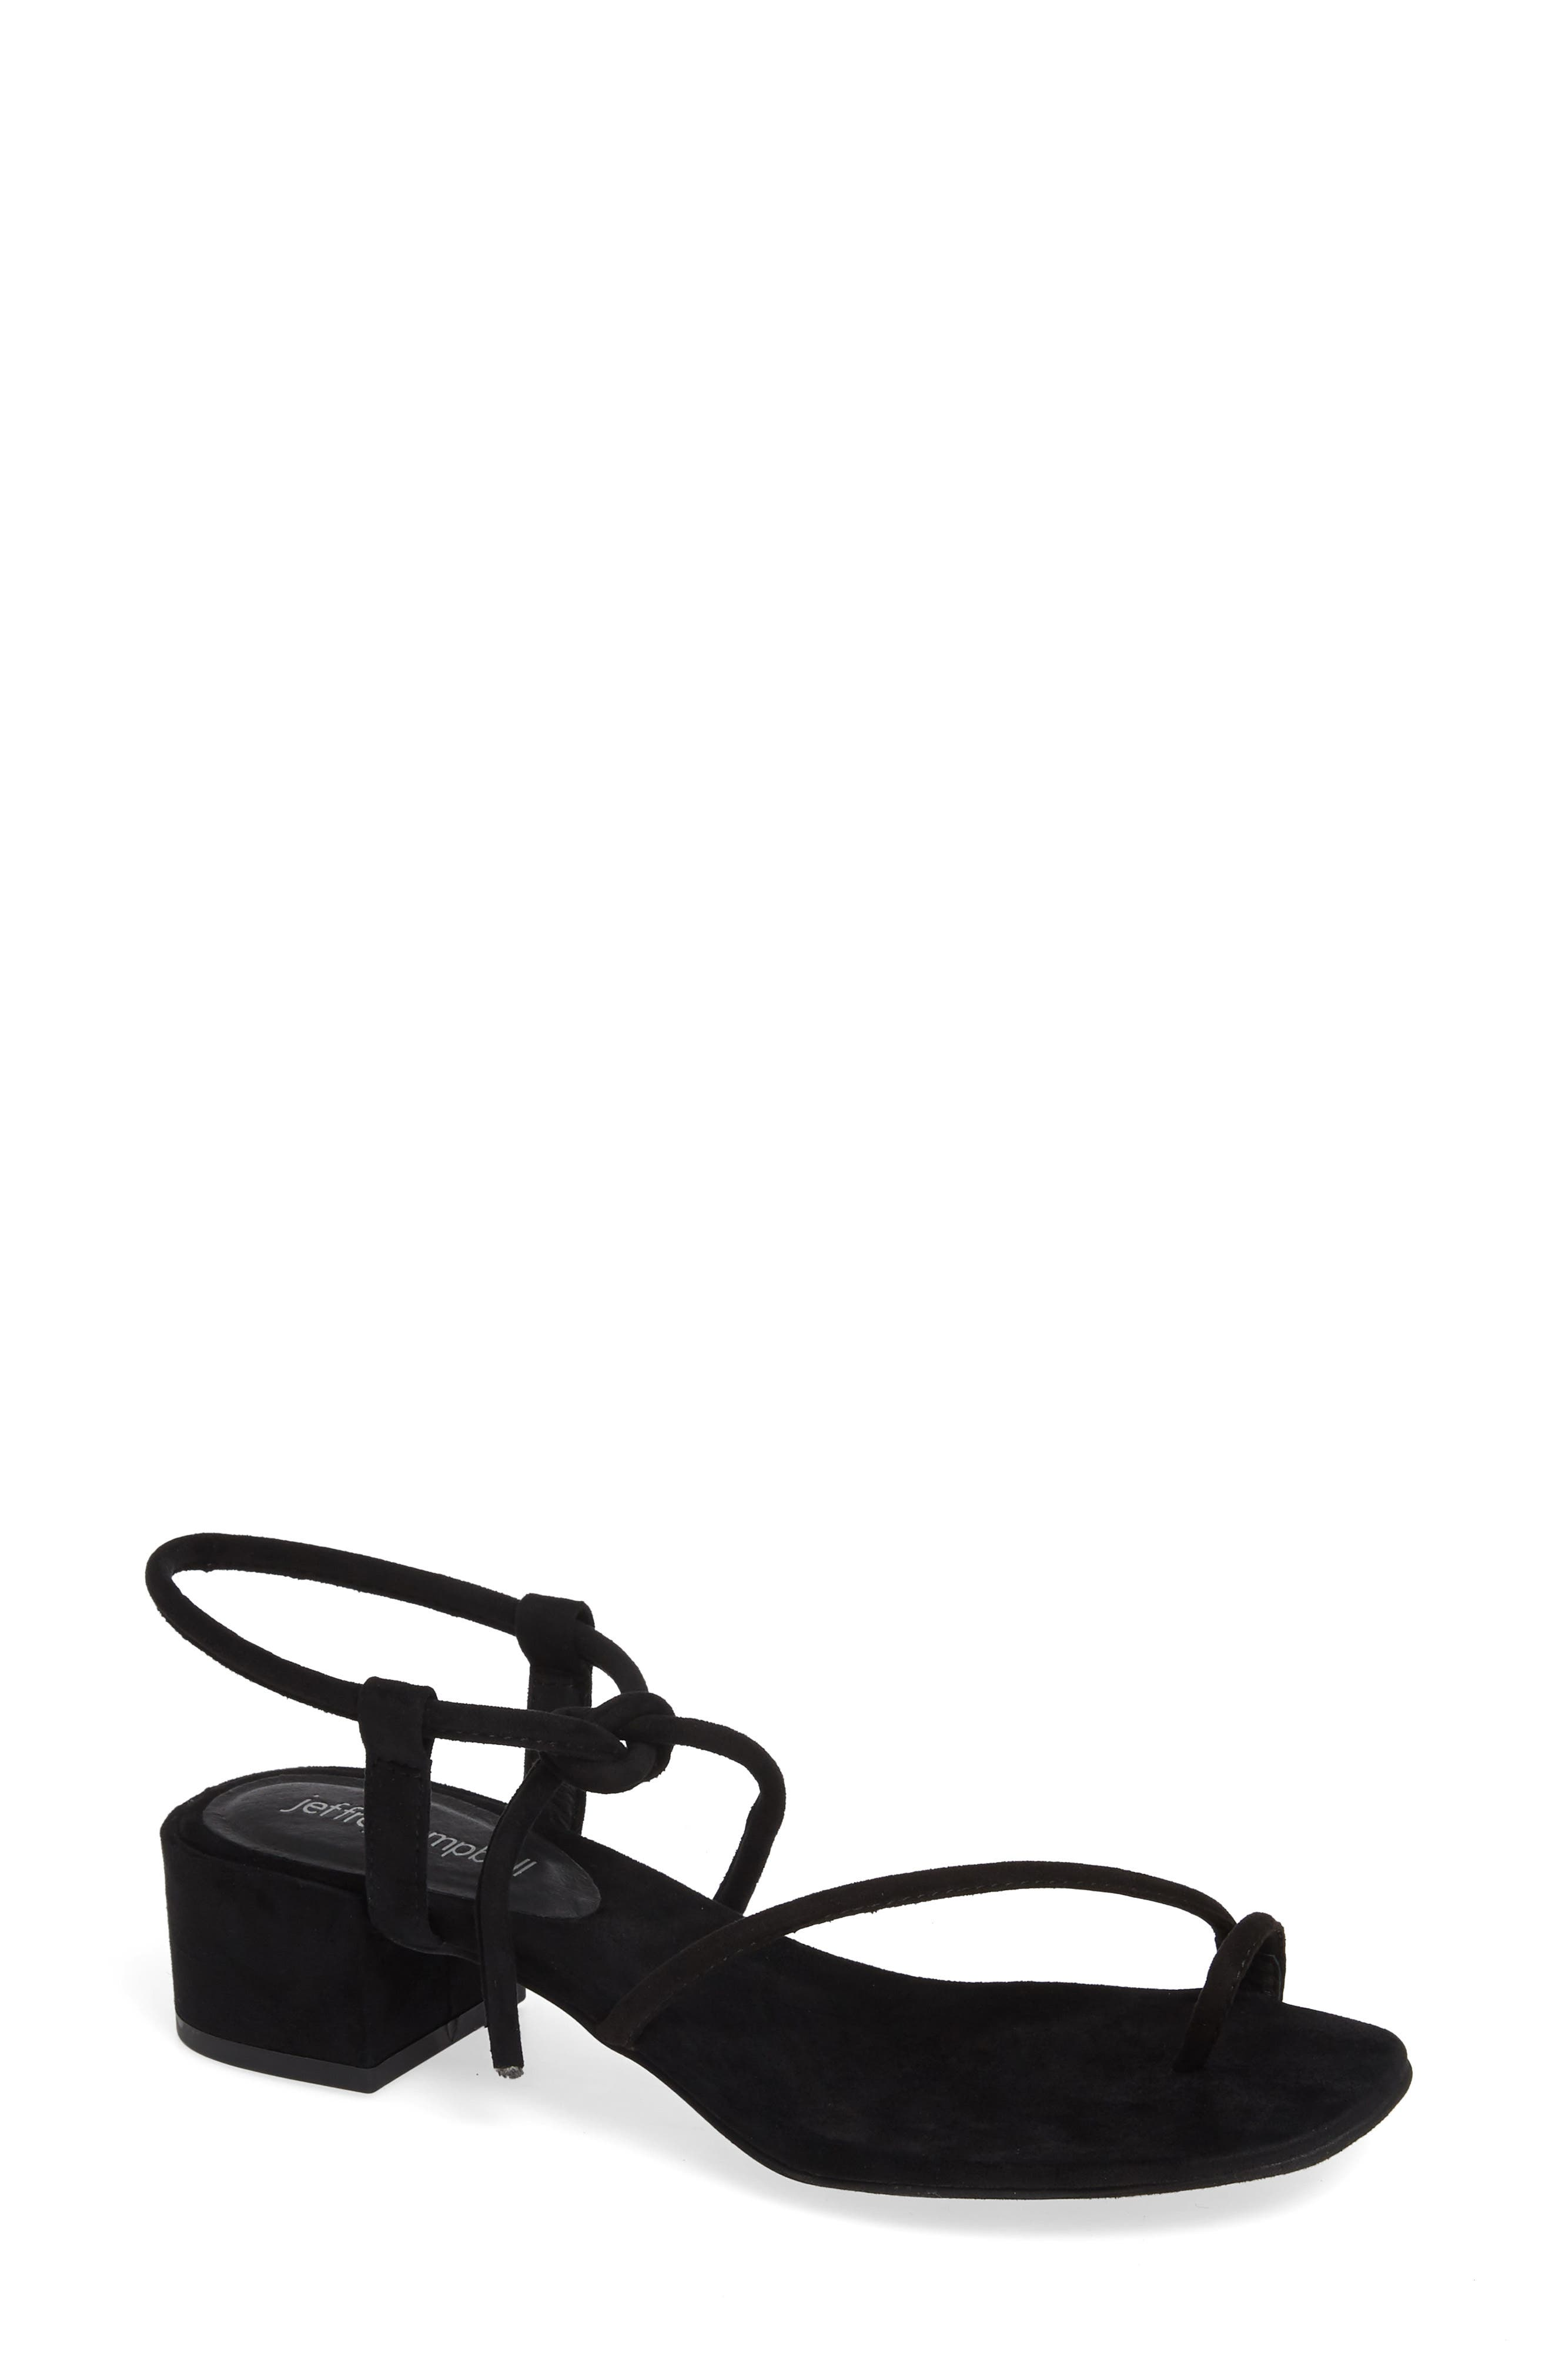 JEFFREY CAMPBELL Strappy Sandal, Main, color, 005